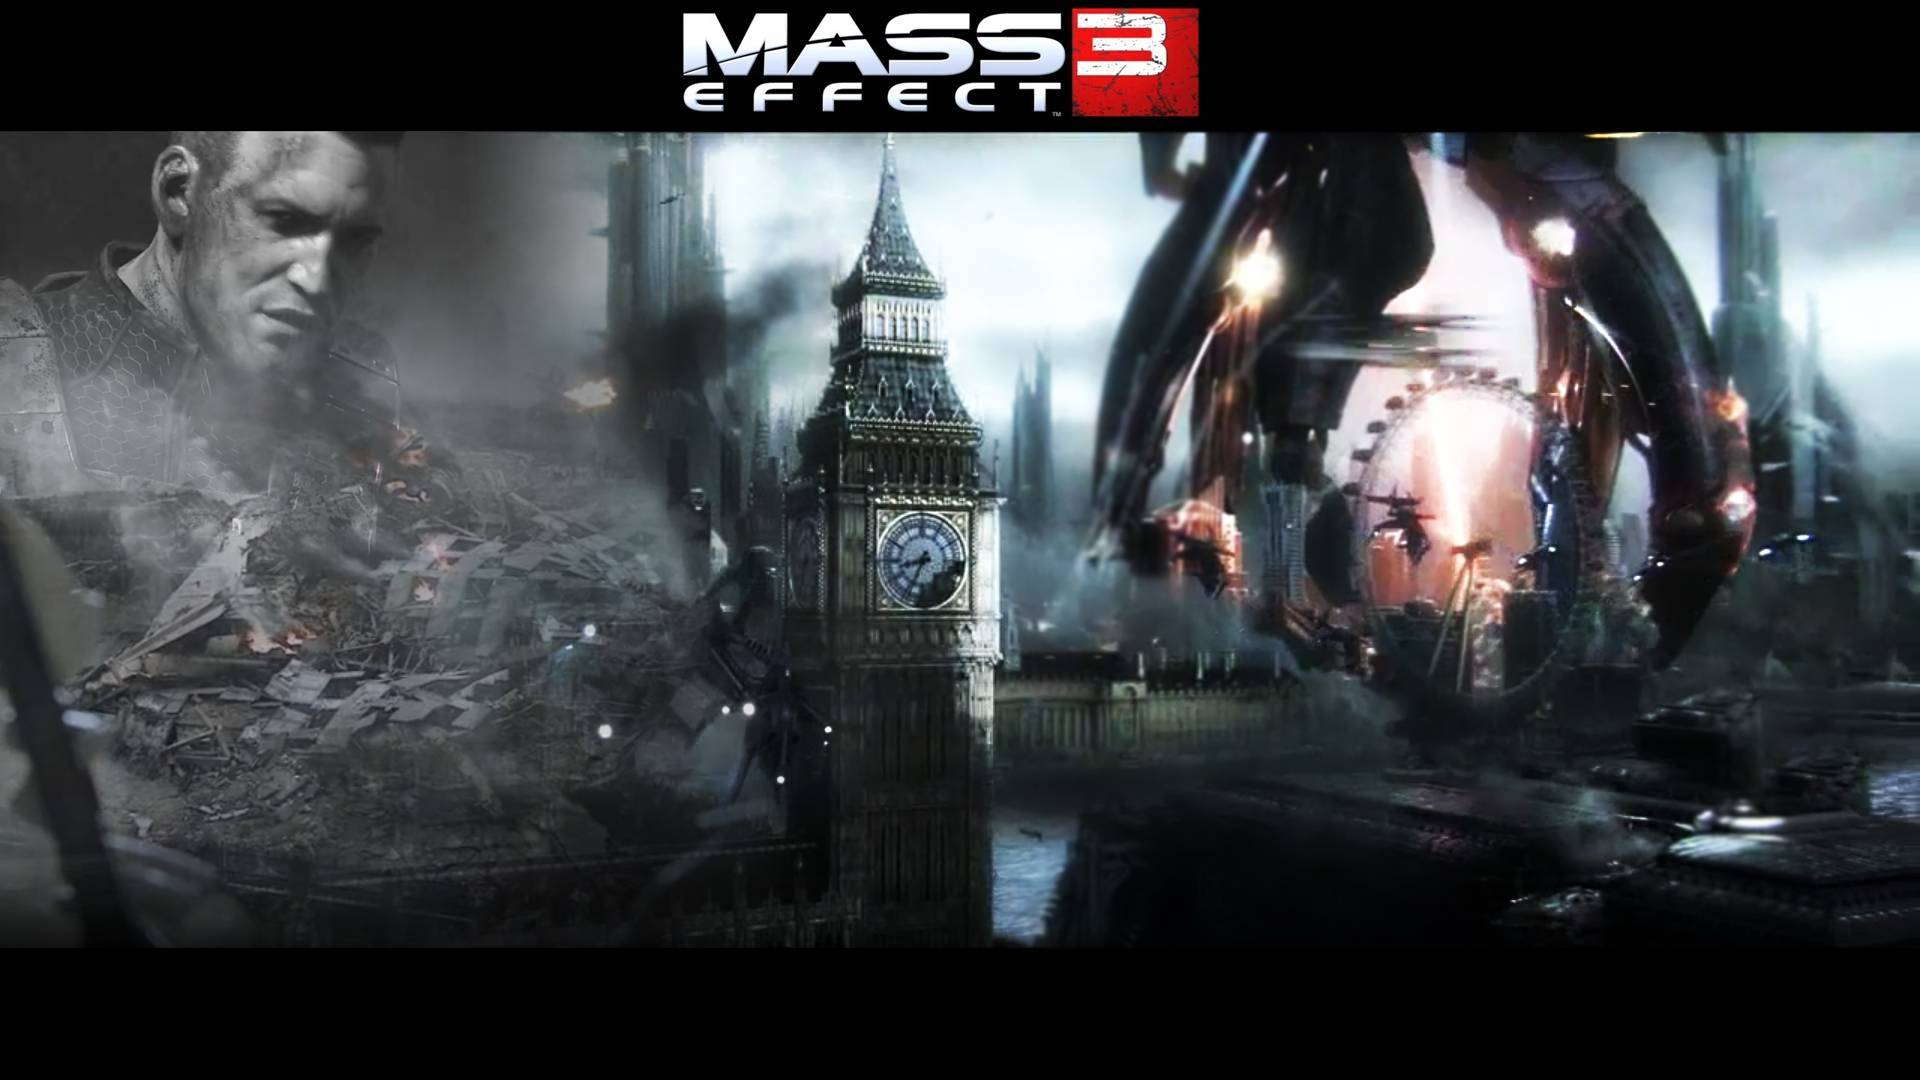 mass effect 3 wallpapers in full 1080p hd gaming phanatic